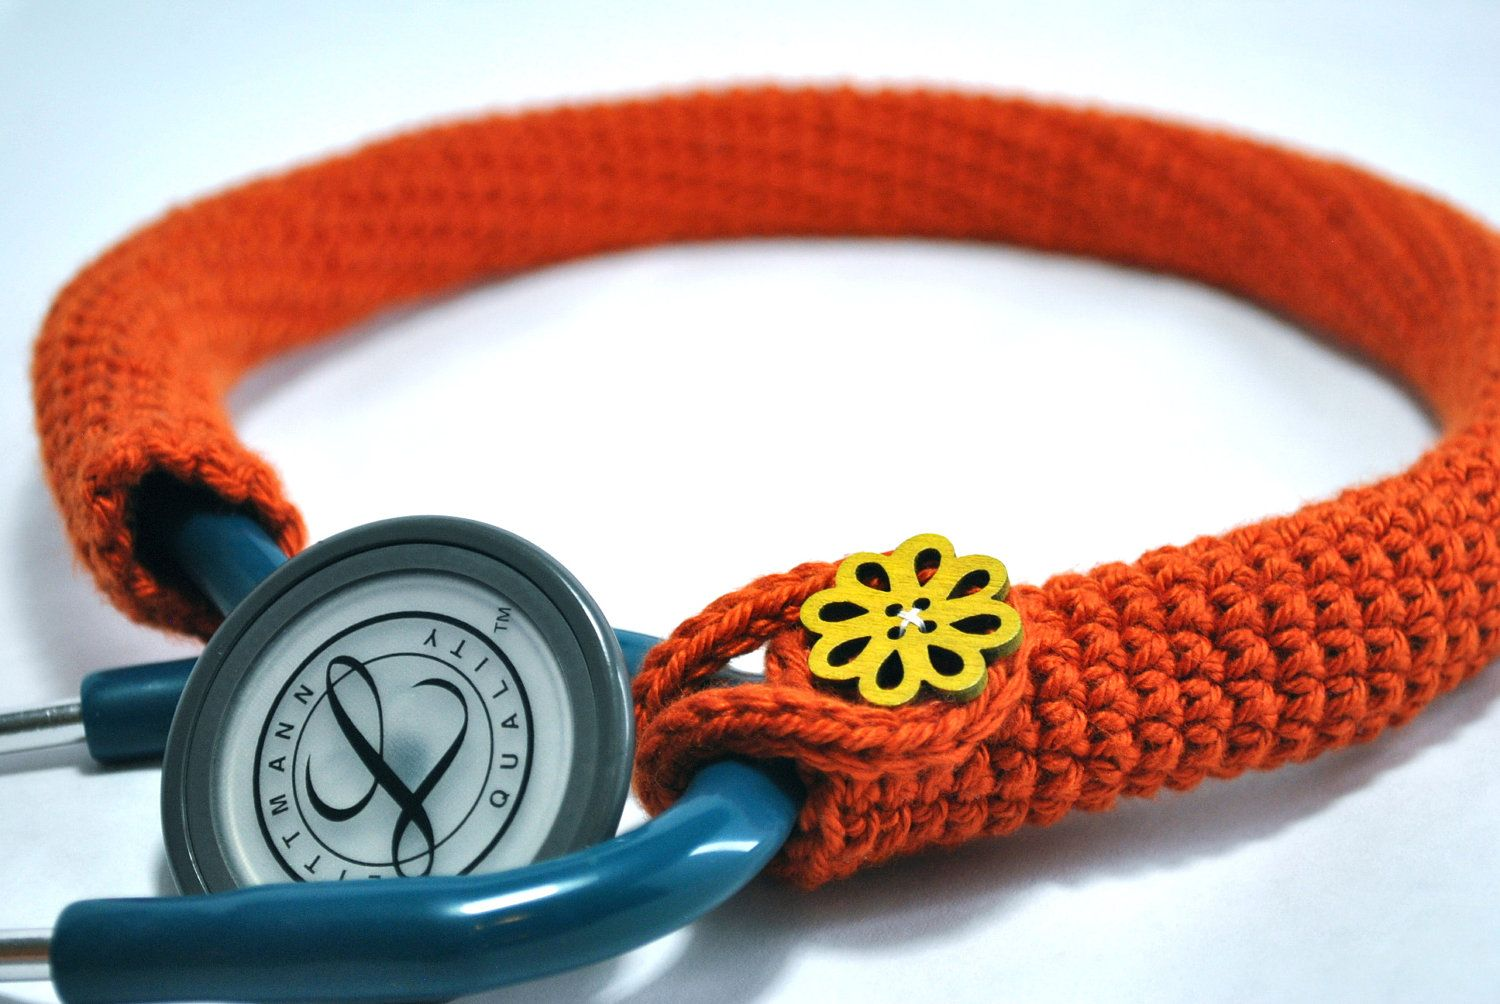 Crochet Stethoscope Coverink Ill Try This Style Next Time I